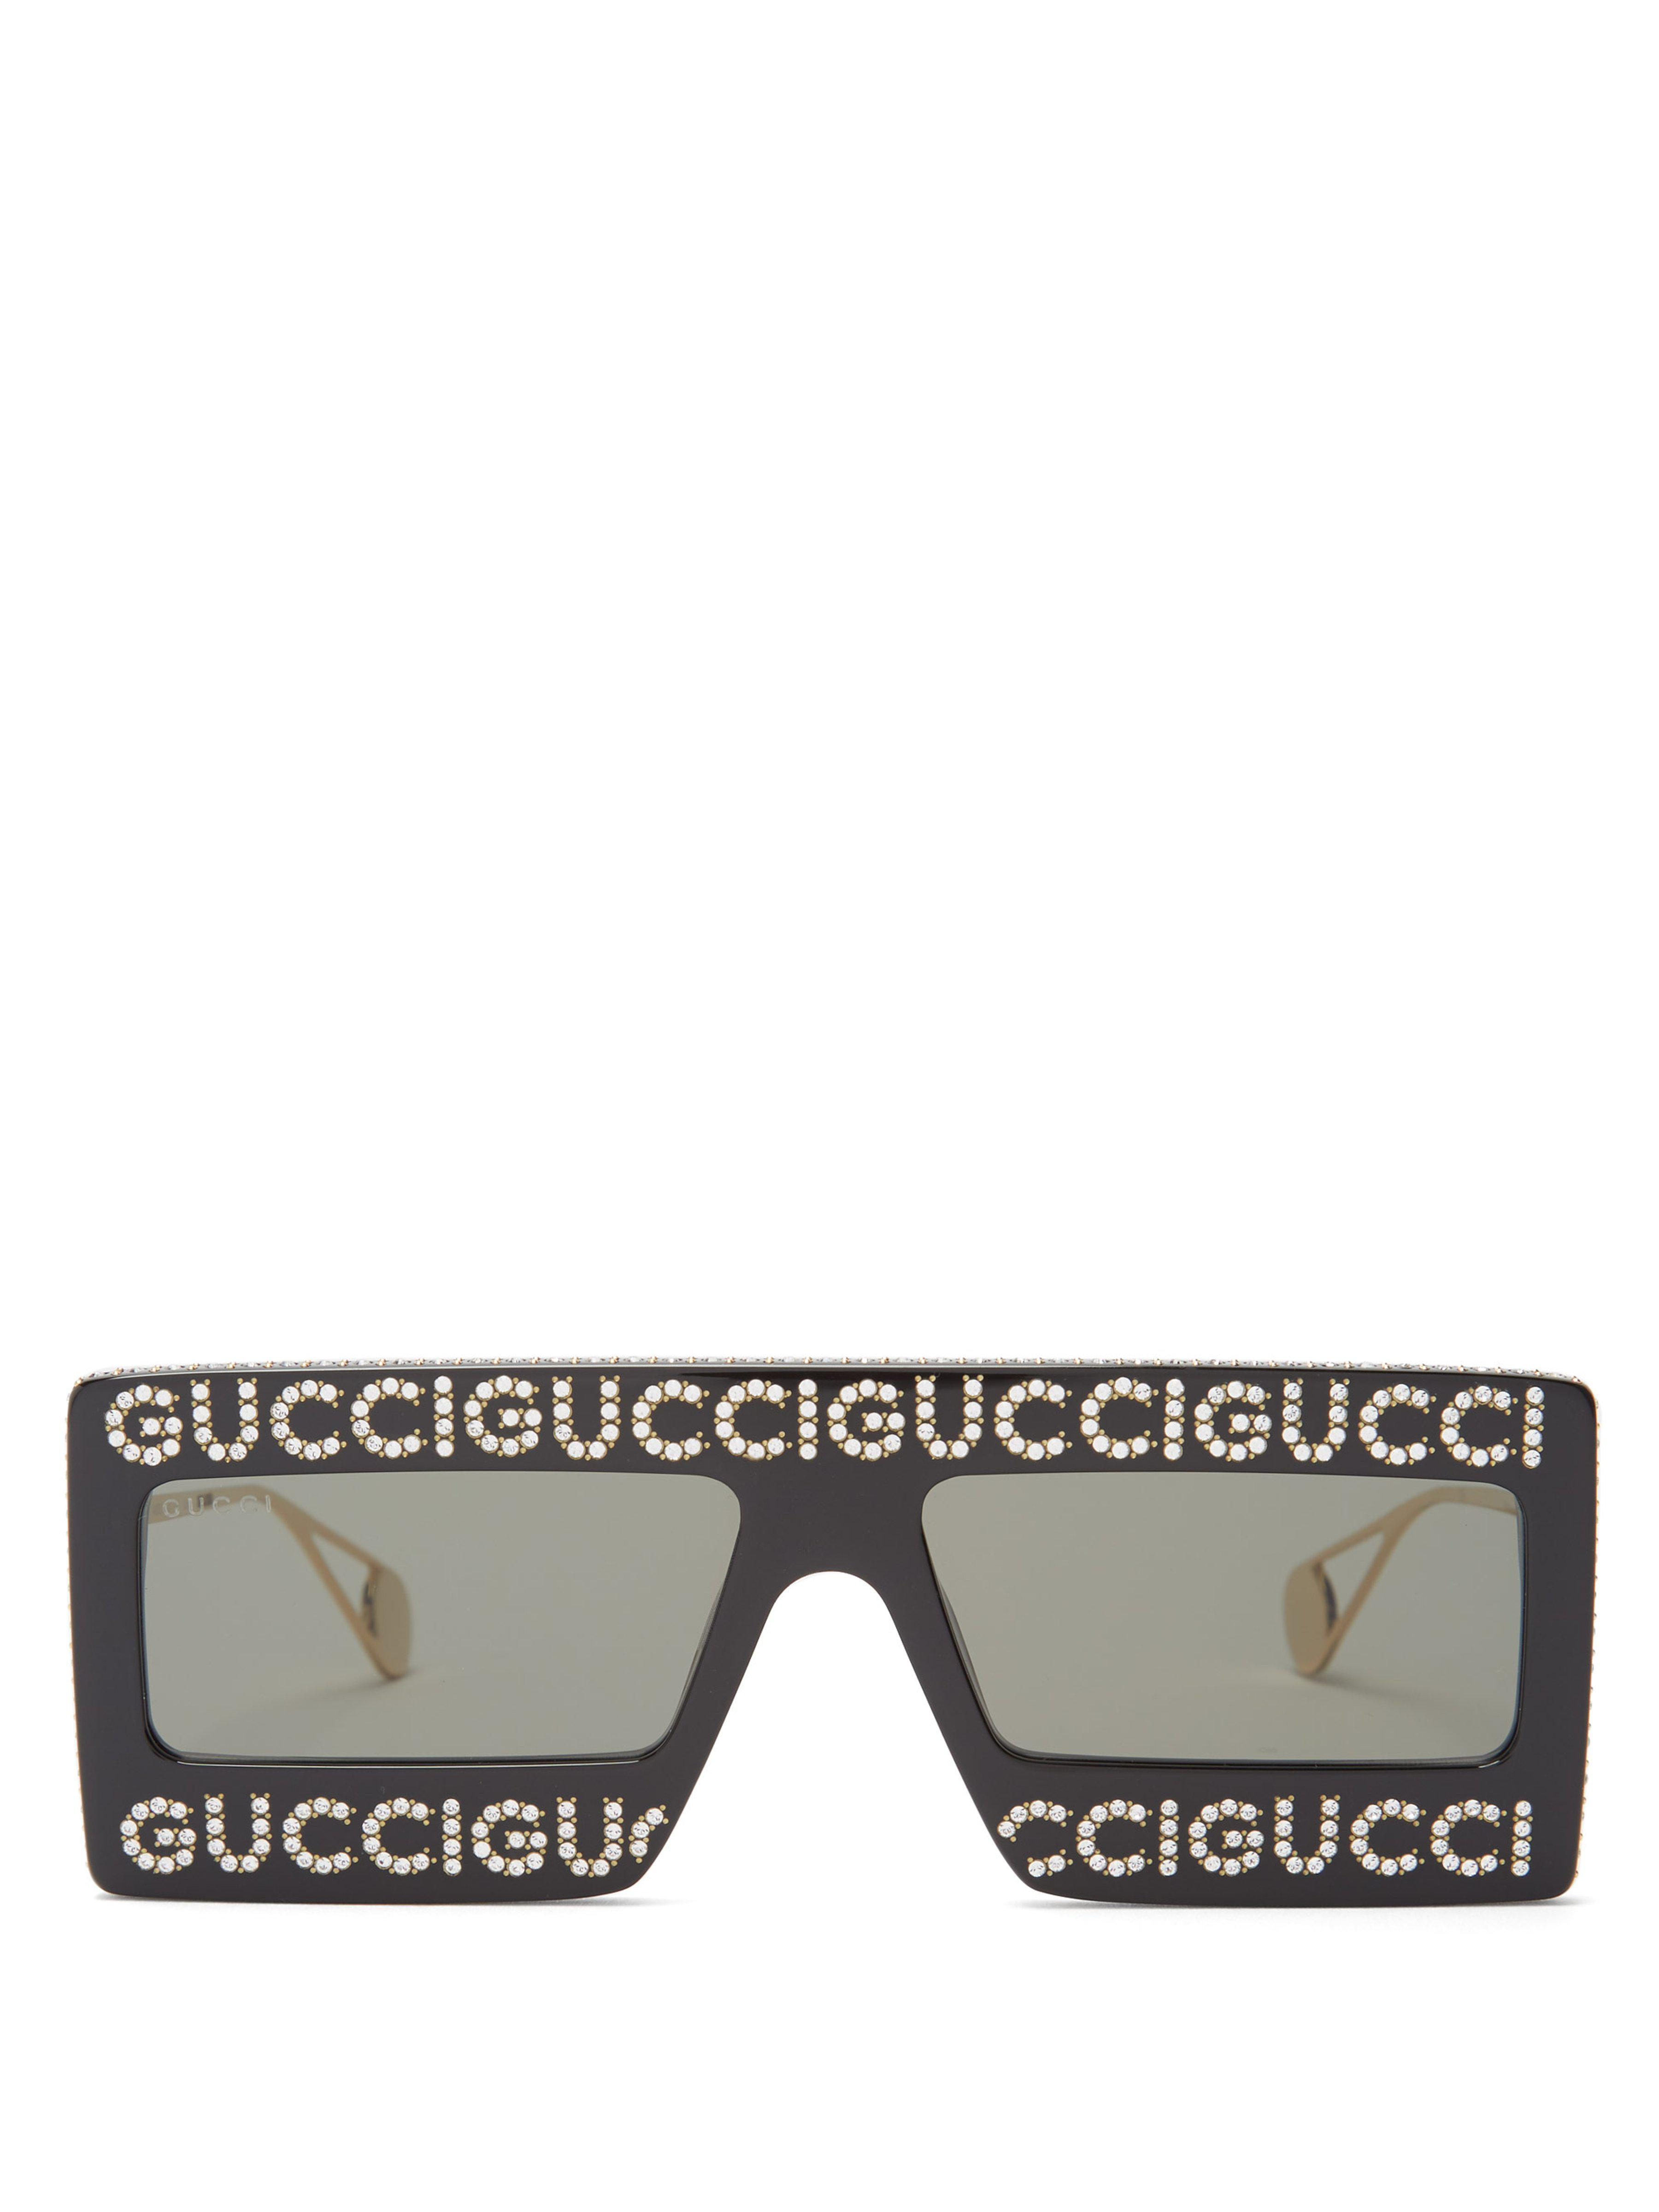 773027e33e Gucci Hollywood Forever Embellished Sunglasses in Black - Save 44 ...